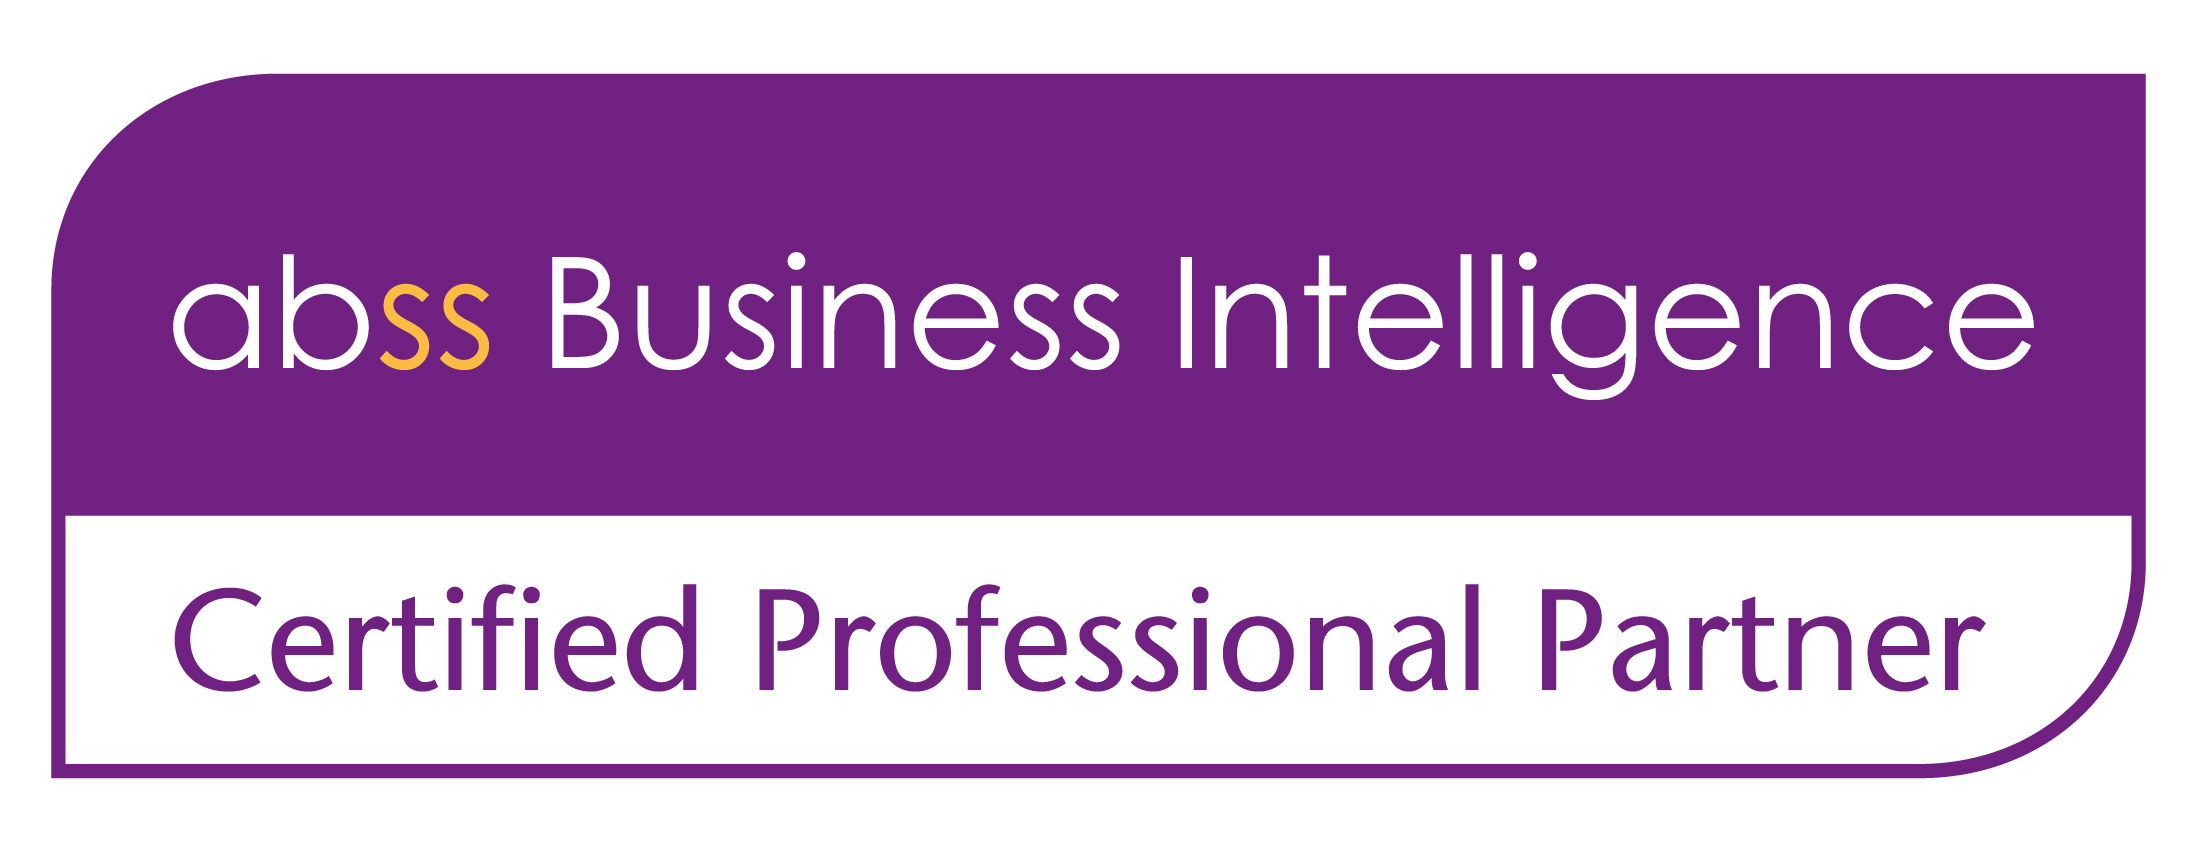 Business_Intelligence_Partner_logo